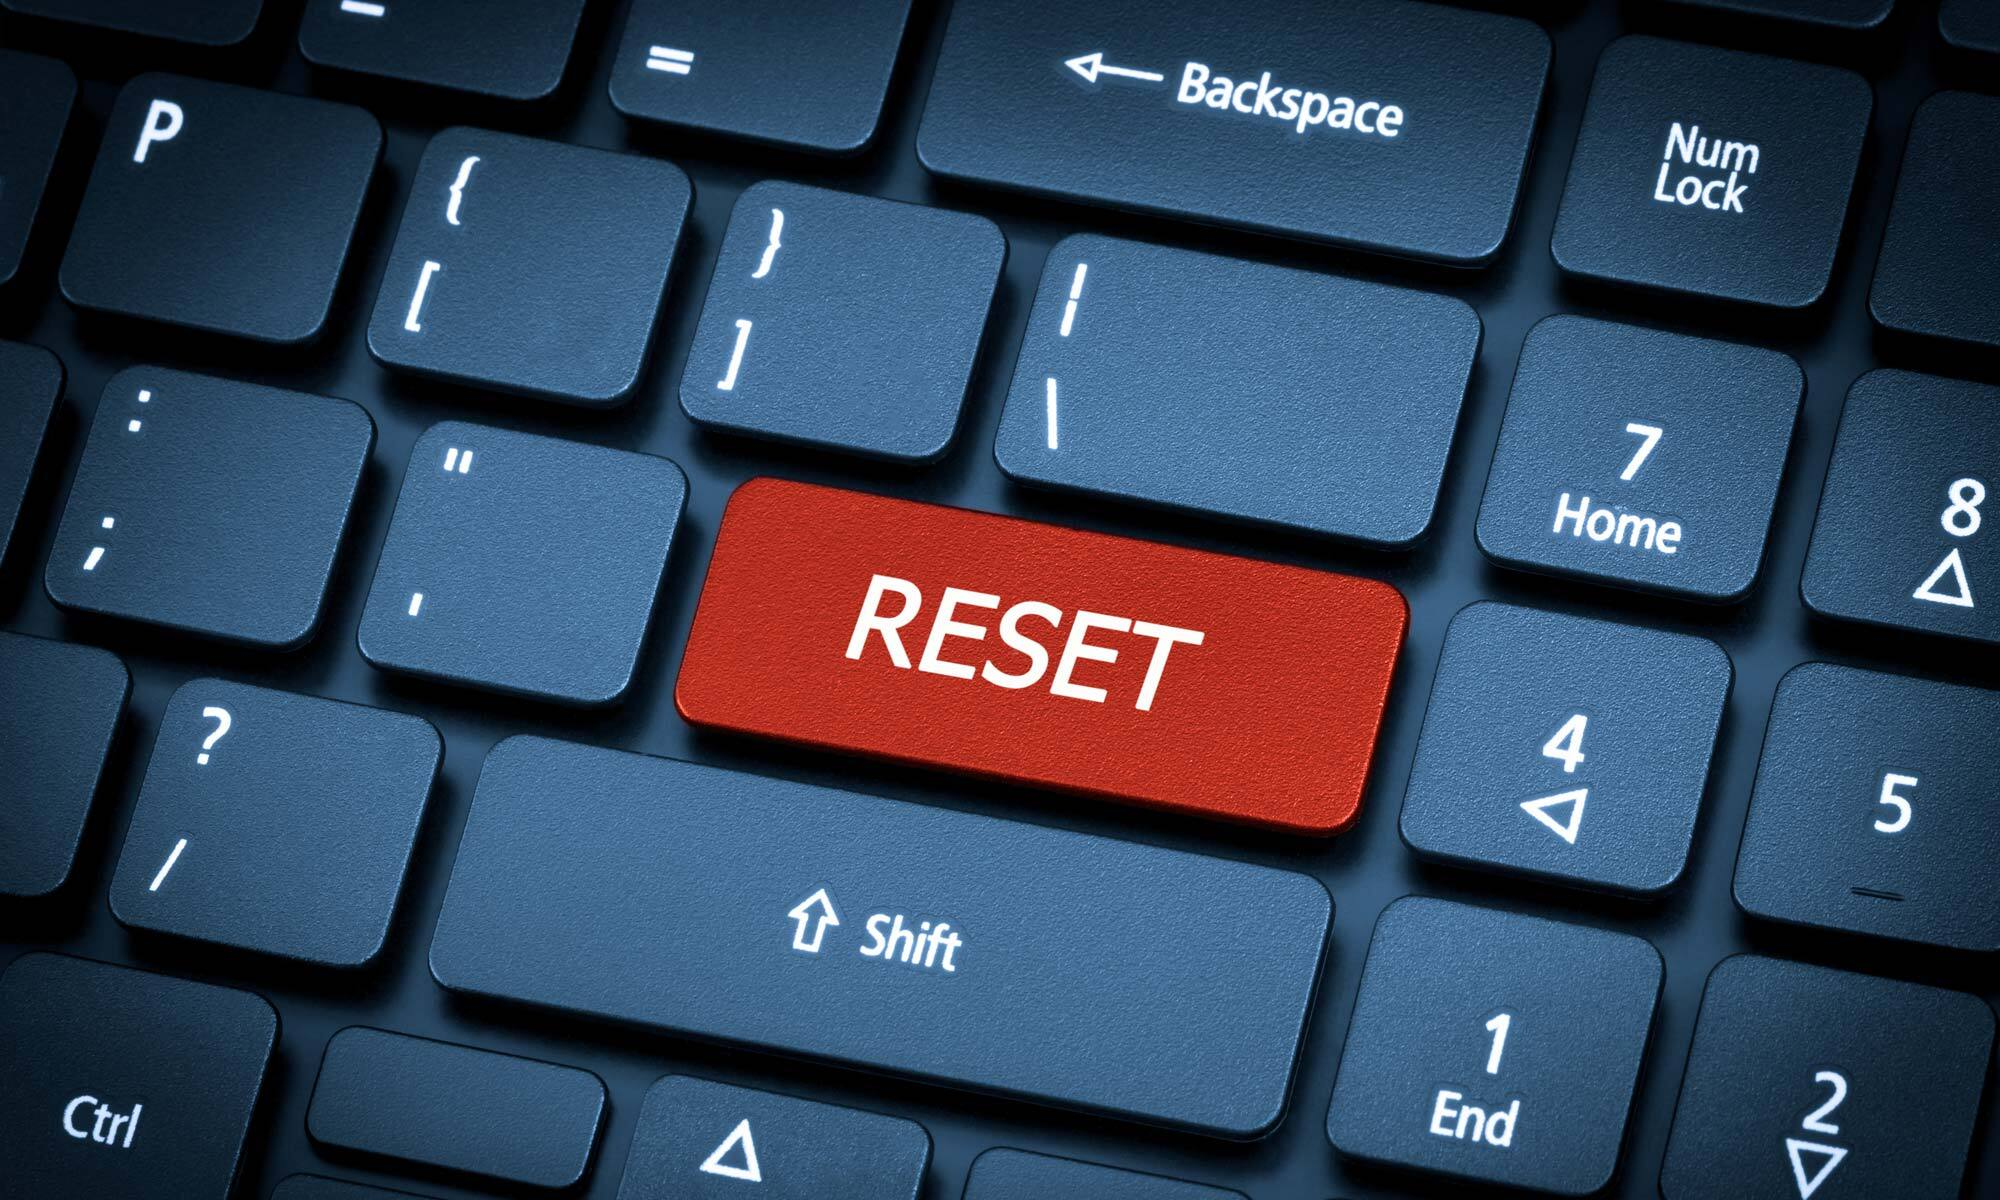 https://www.contentbloom.com/wp-content/uploads/2020/08/reset-button-salesforce.jpg